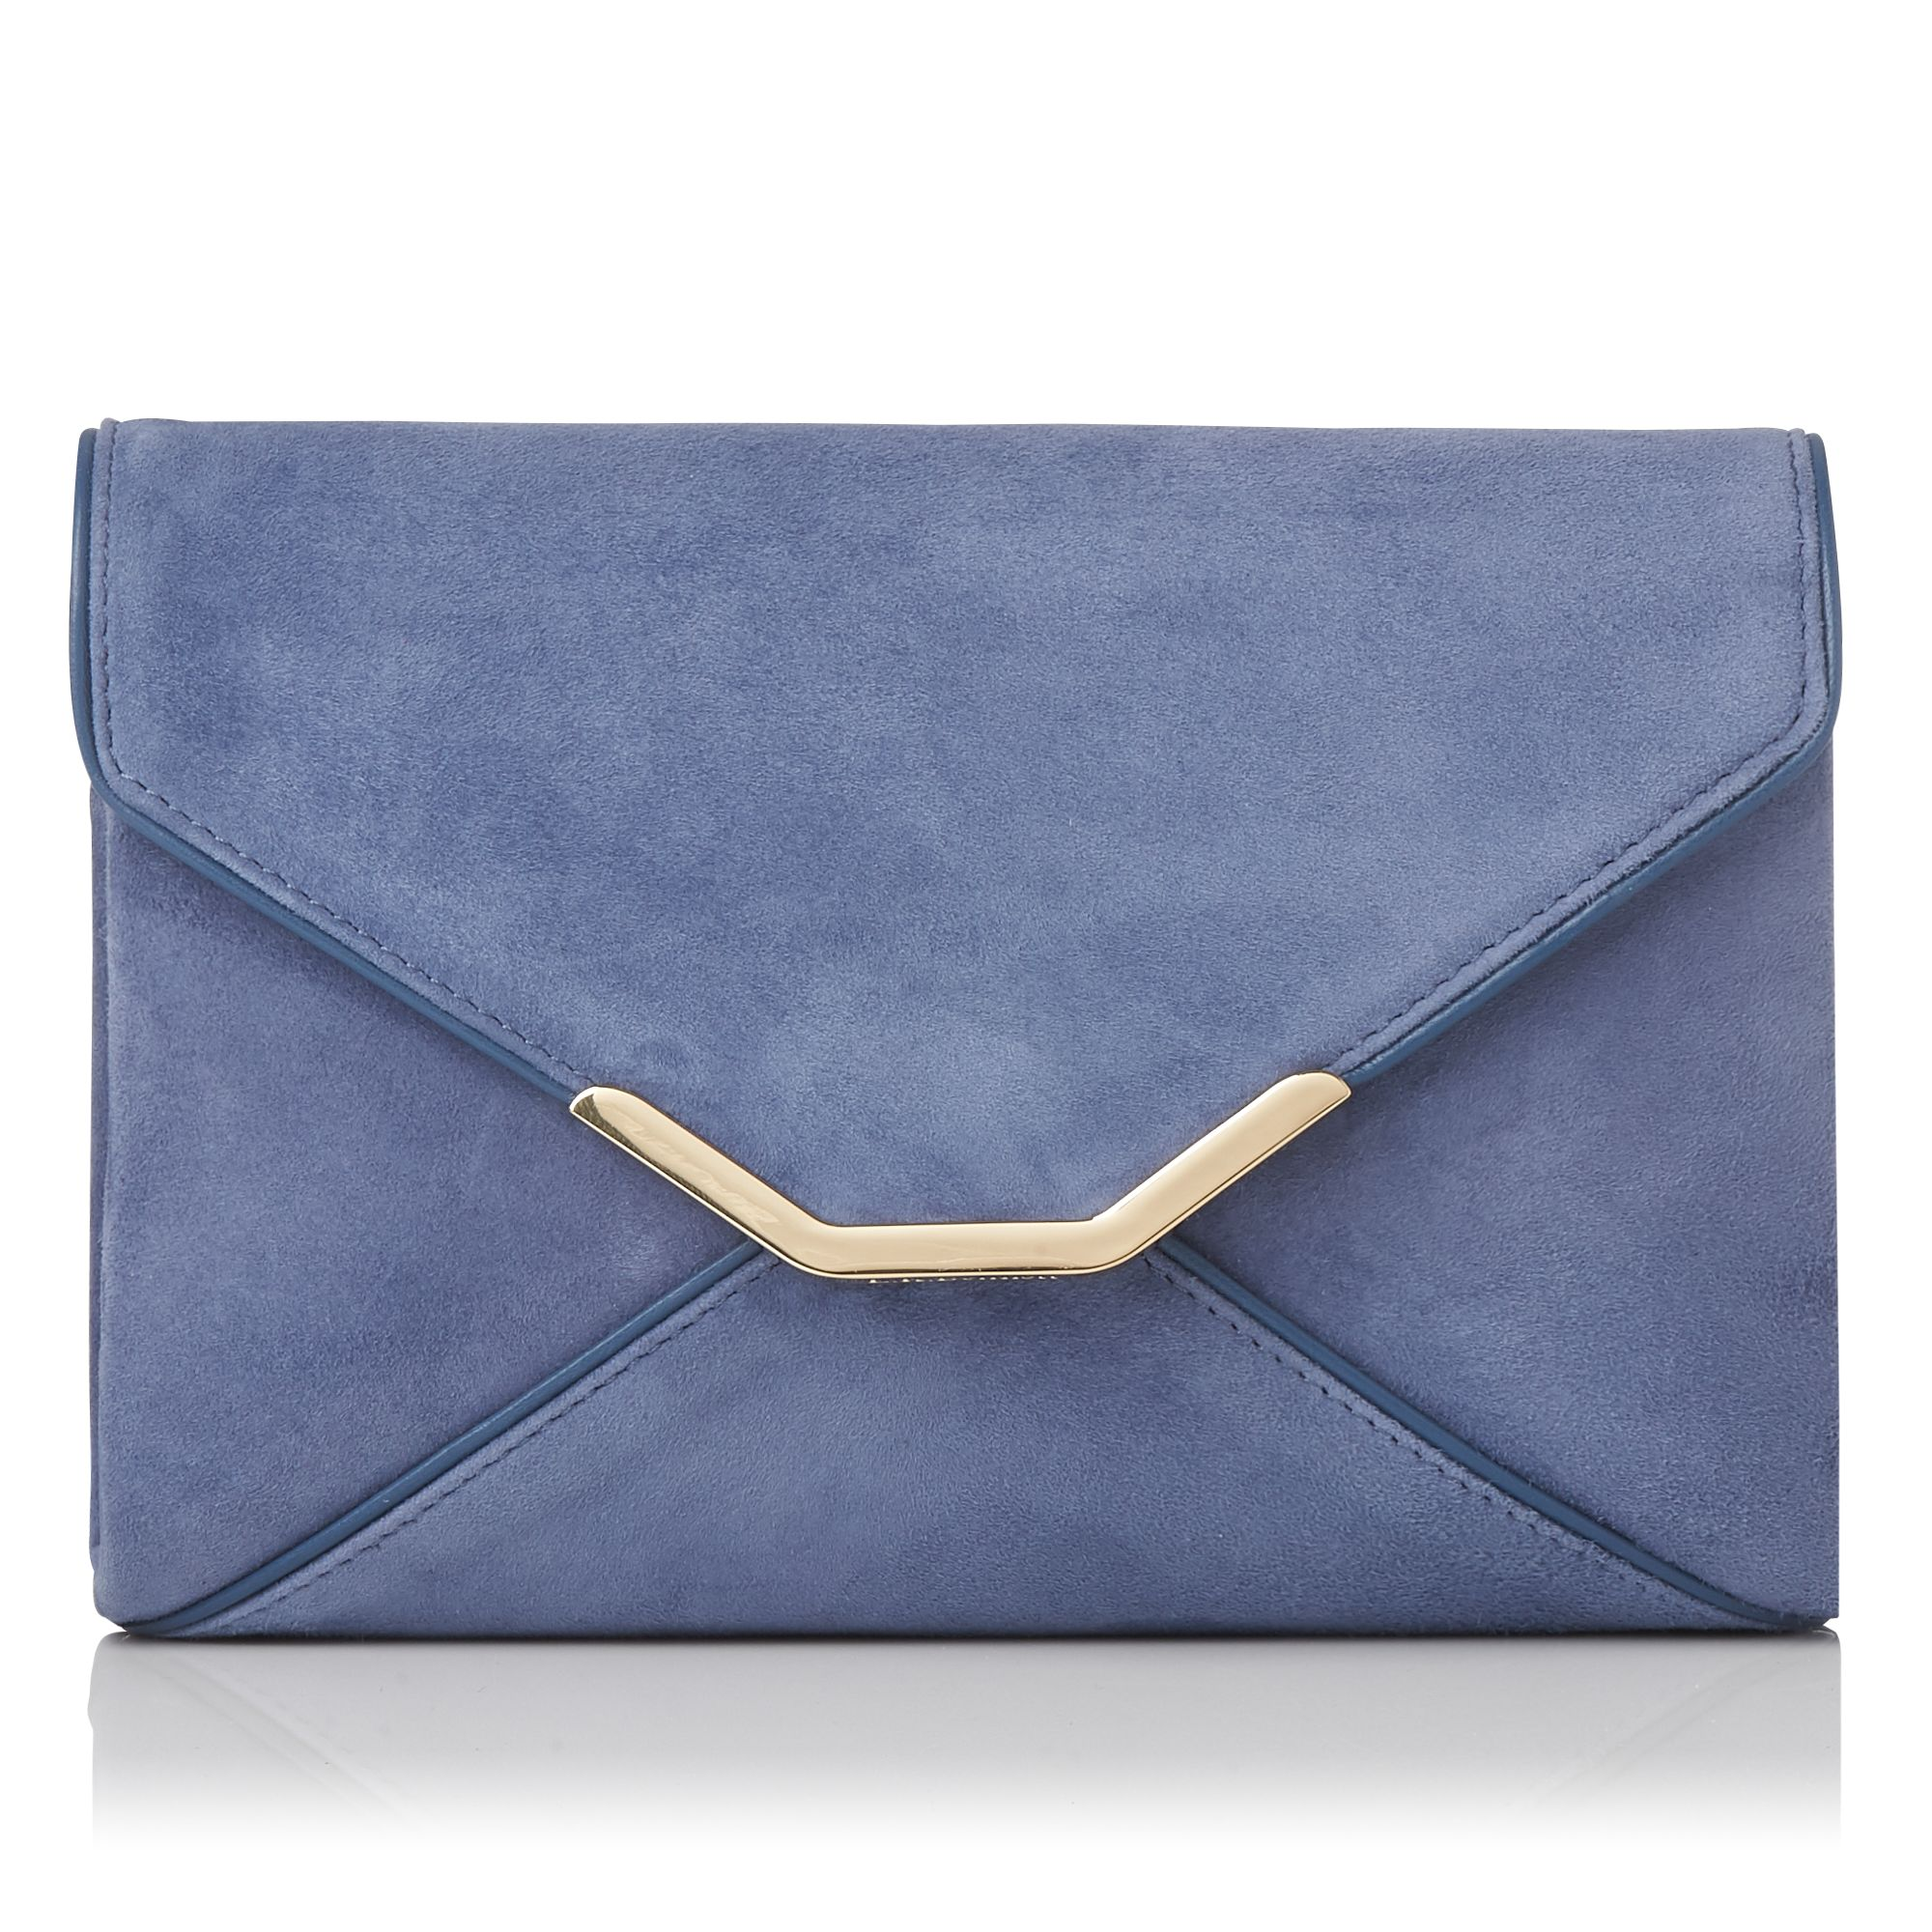 L.K.Bennett Alena Clutch, Powder Blue